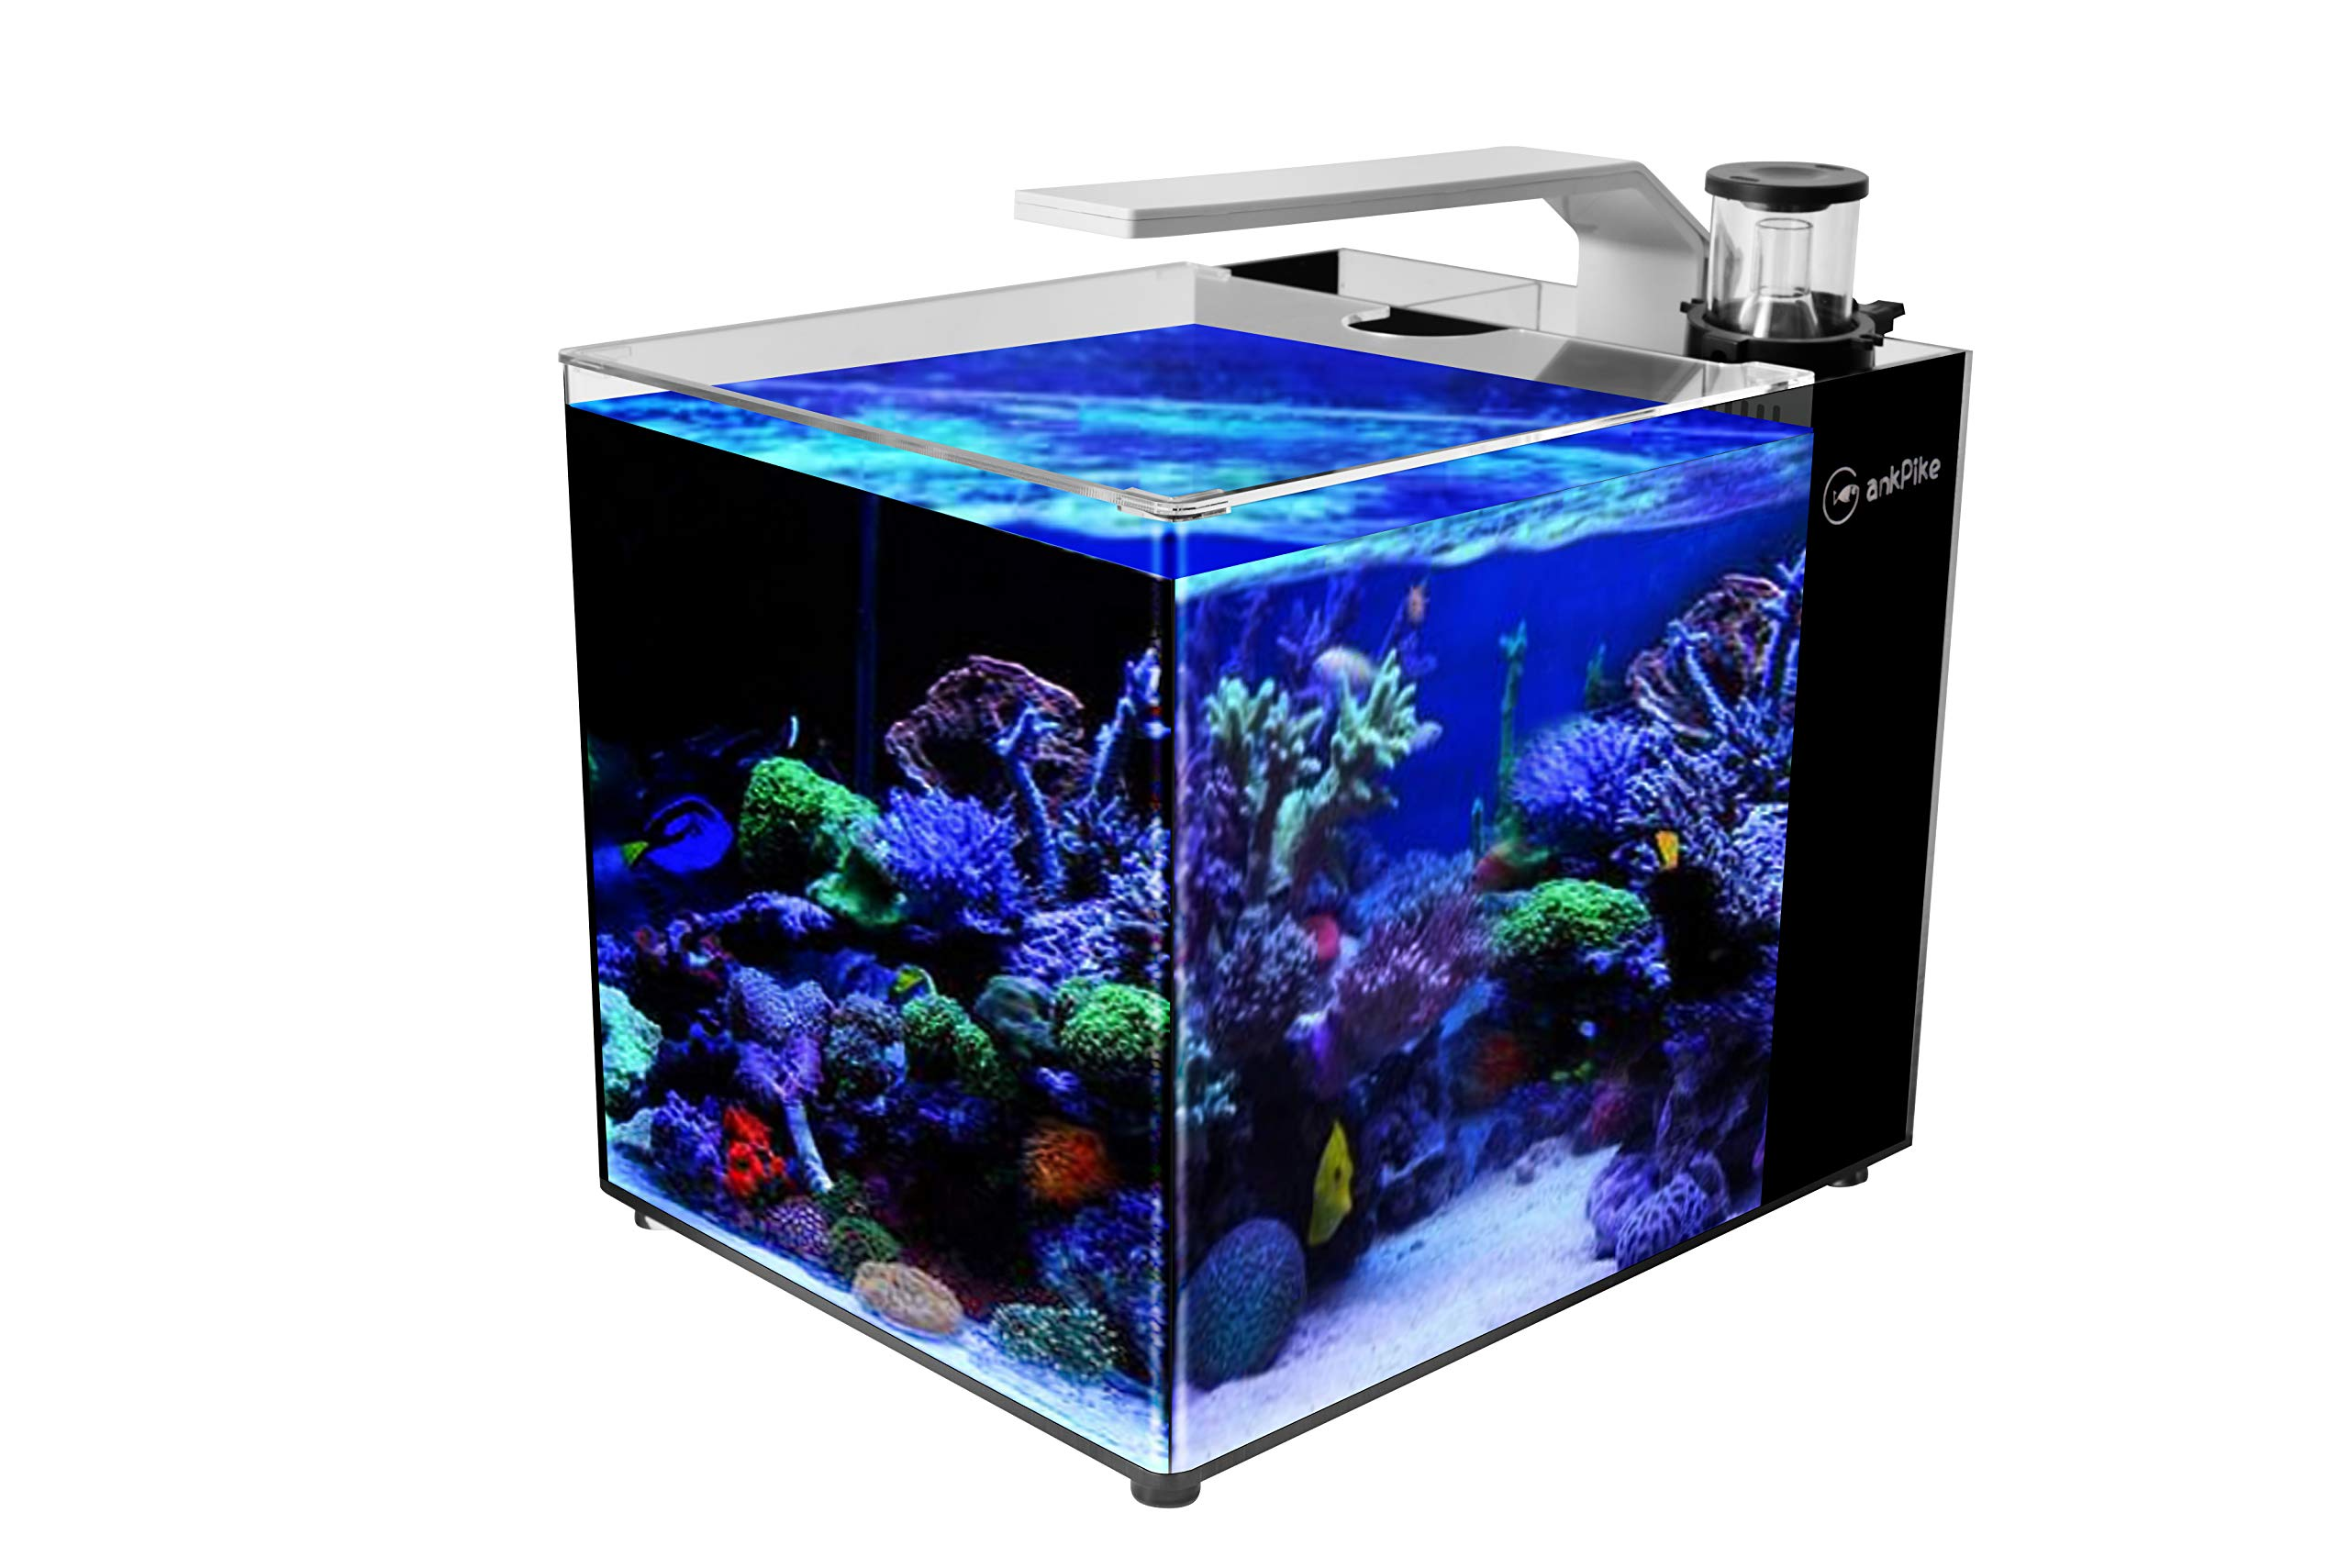 GankPike 6-Gallon Saltwater Aquarium Marine Fish Tank Reef Tank with Lid, Protein Skimmer, Heater, LCD Digital Thermometer and Pump by GankPike